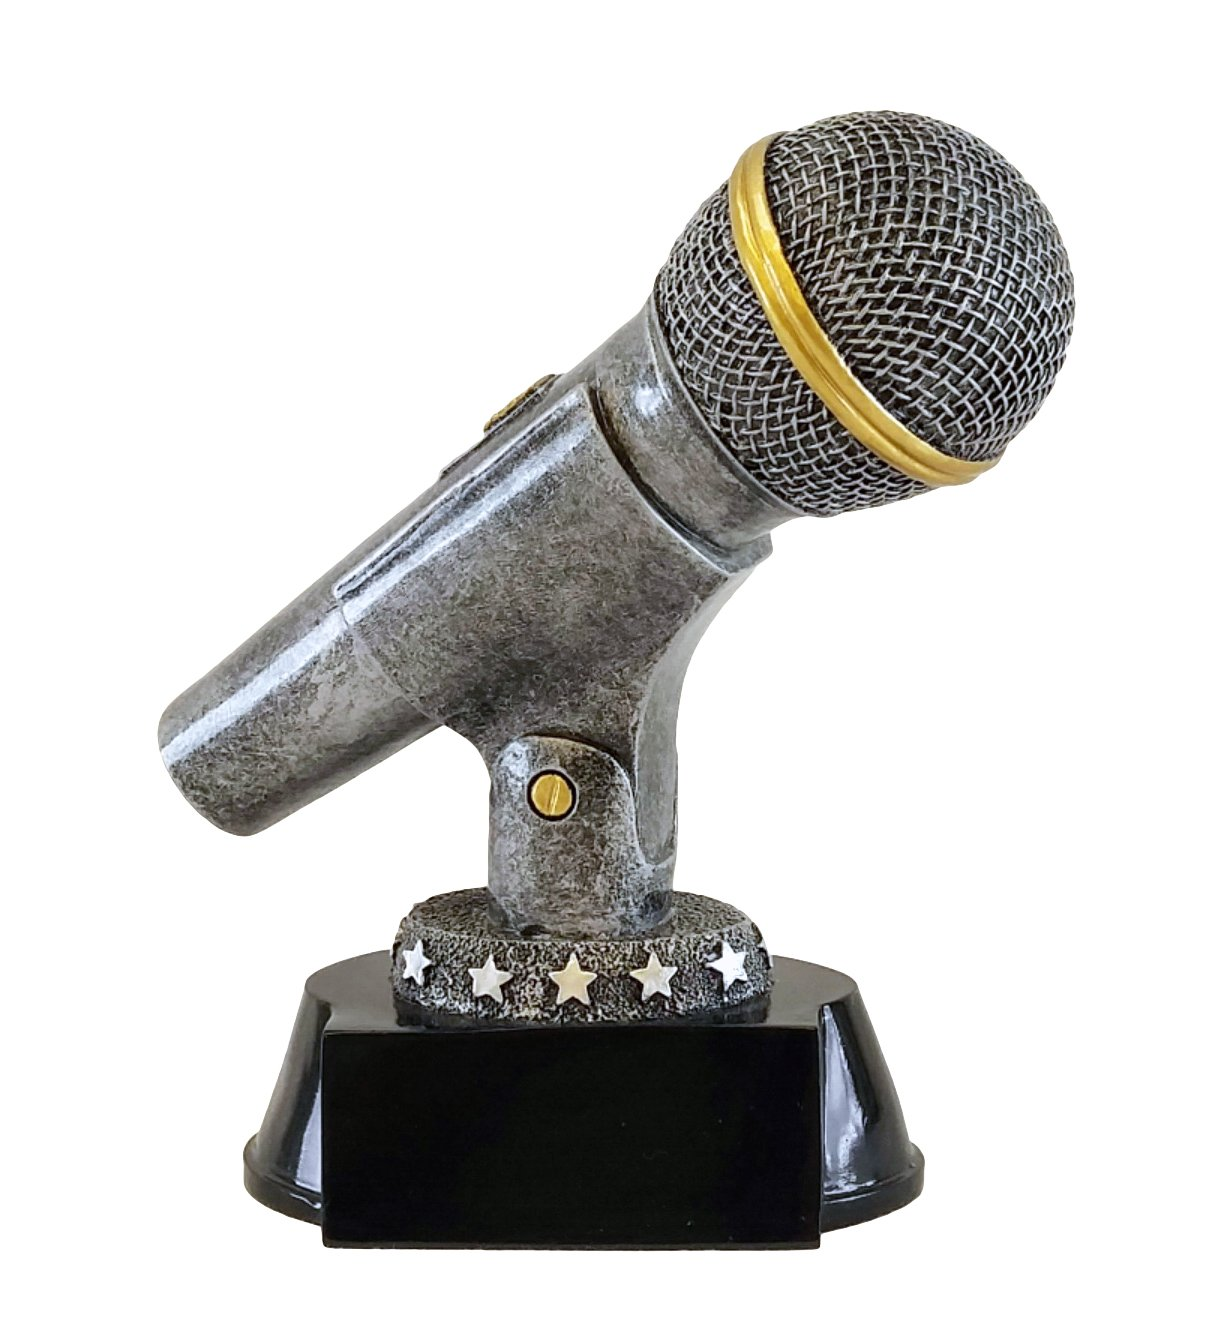 Decade Awards Silver Microphone Trophy  Karaoke Singer Award - Engraved Plate on Request Exclusive, 6 inches tall